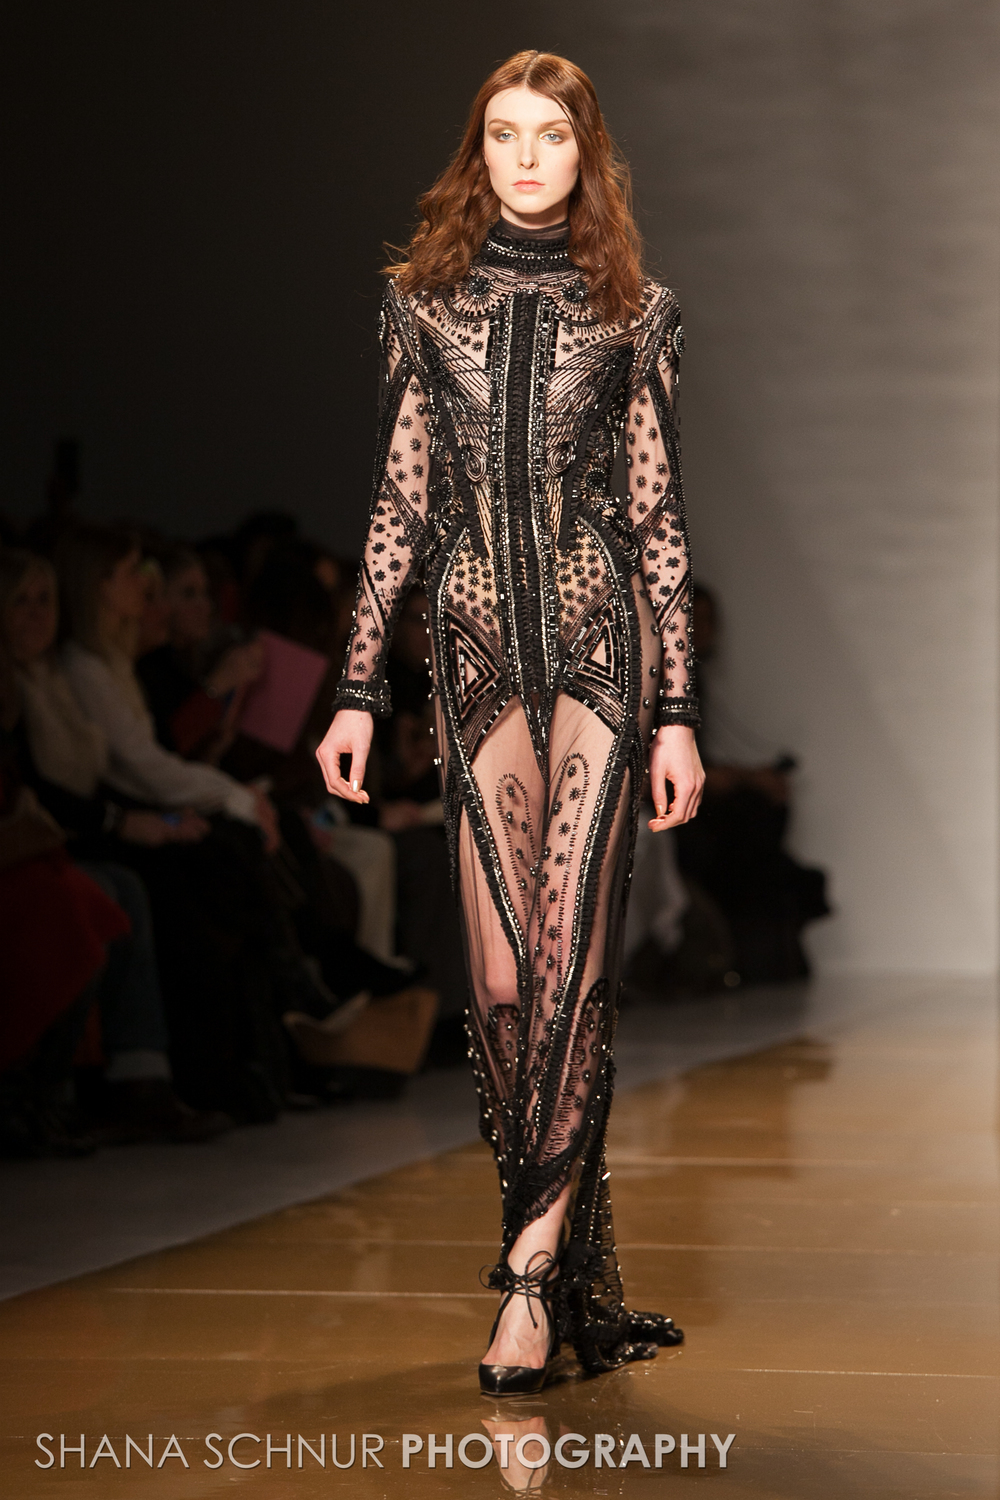 Reem-Acra-New-York-Fashion-Week-Fall-Winter-2015-Shana-Schnur-Photography-IMG_9816-063.jpg